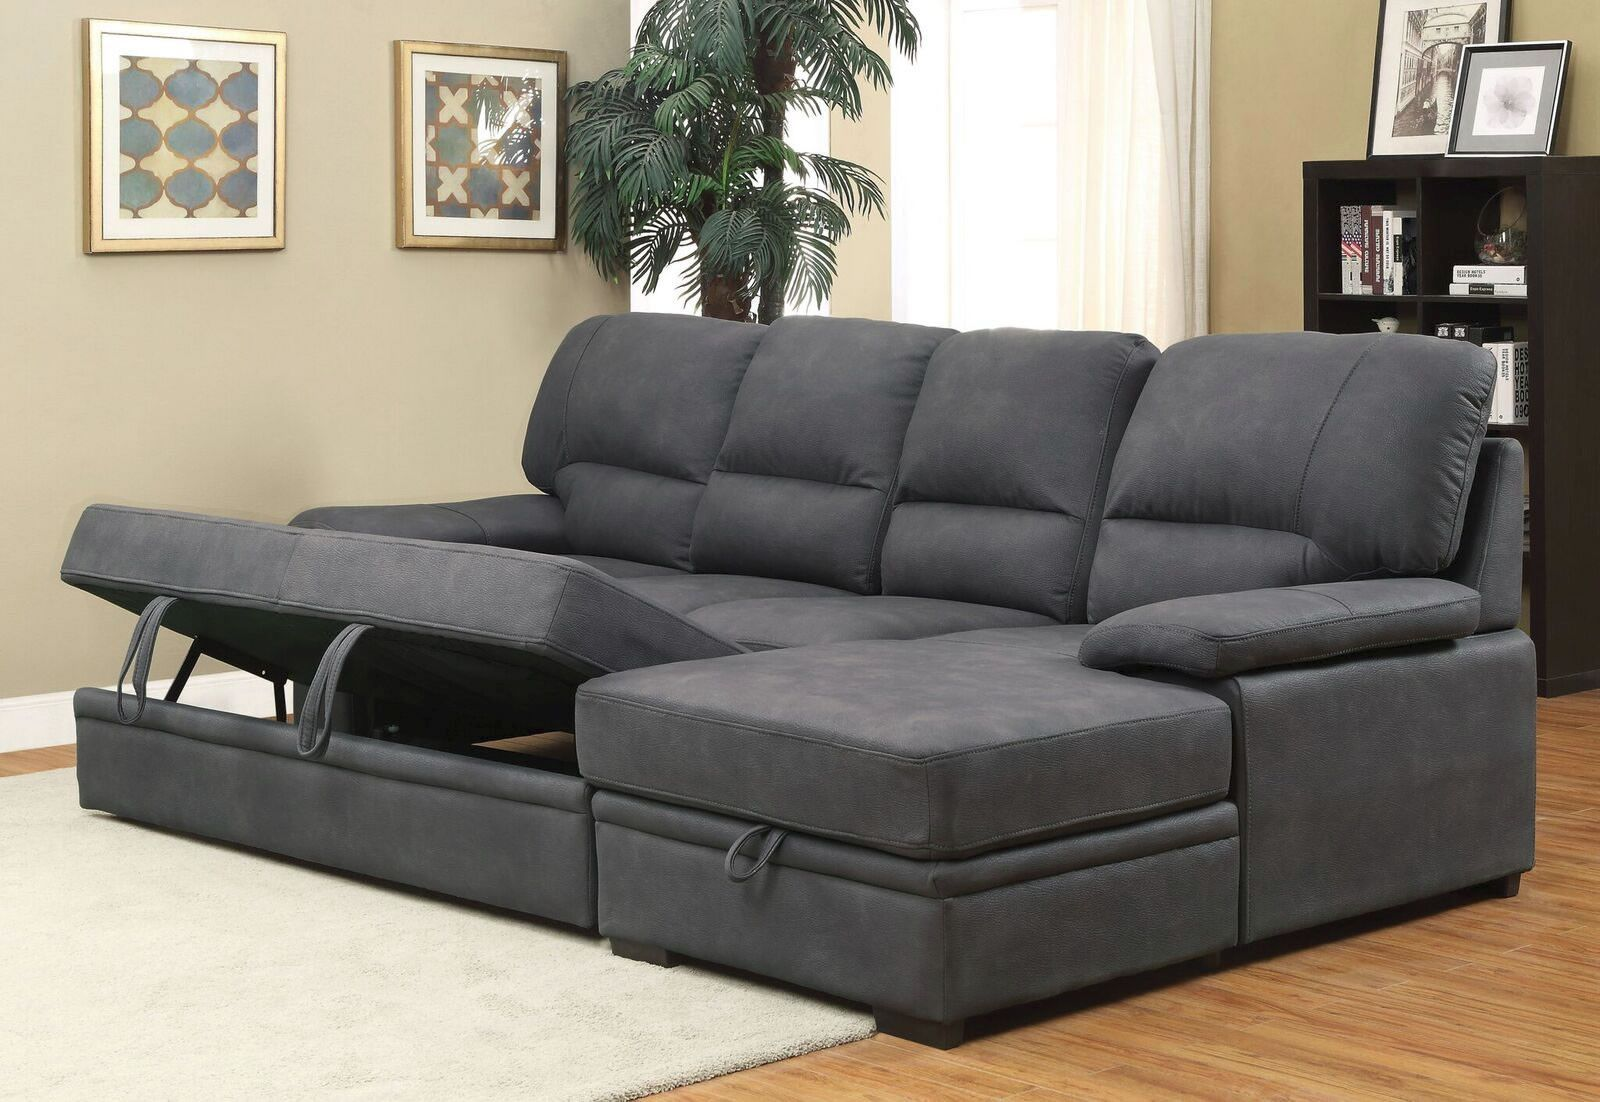 Prime Garo Faux Nubuck Sleeper Sectional Sofa Sleeper Sectional Gmtry Best Dining Table And Chair Ideas Images Gmtryco